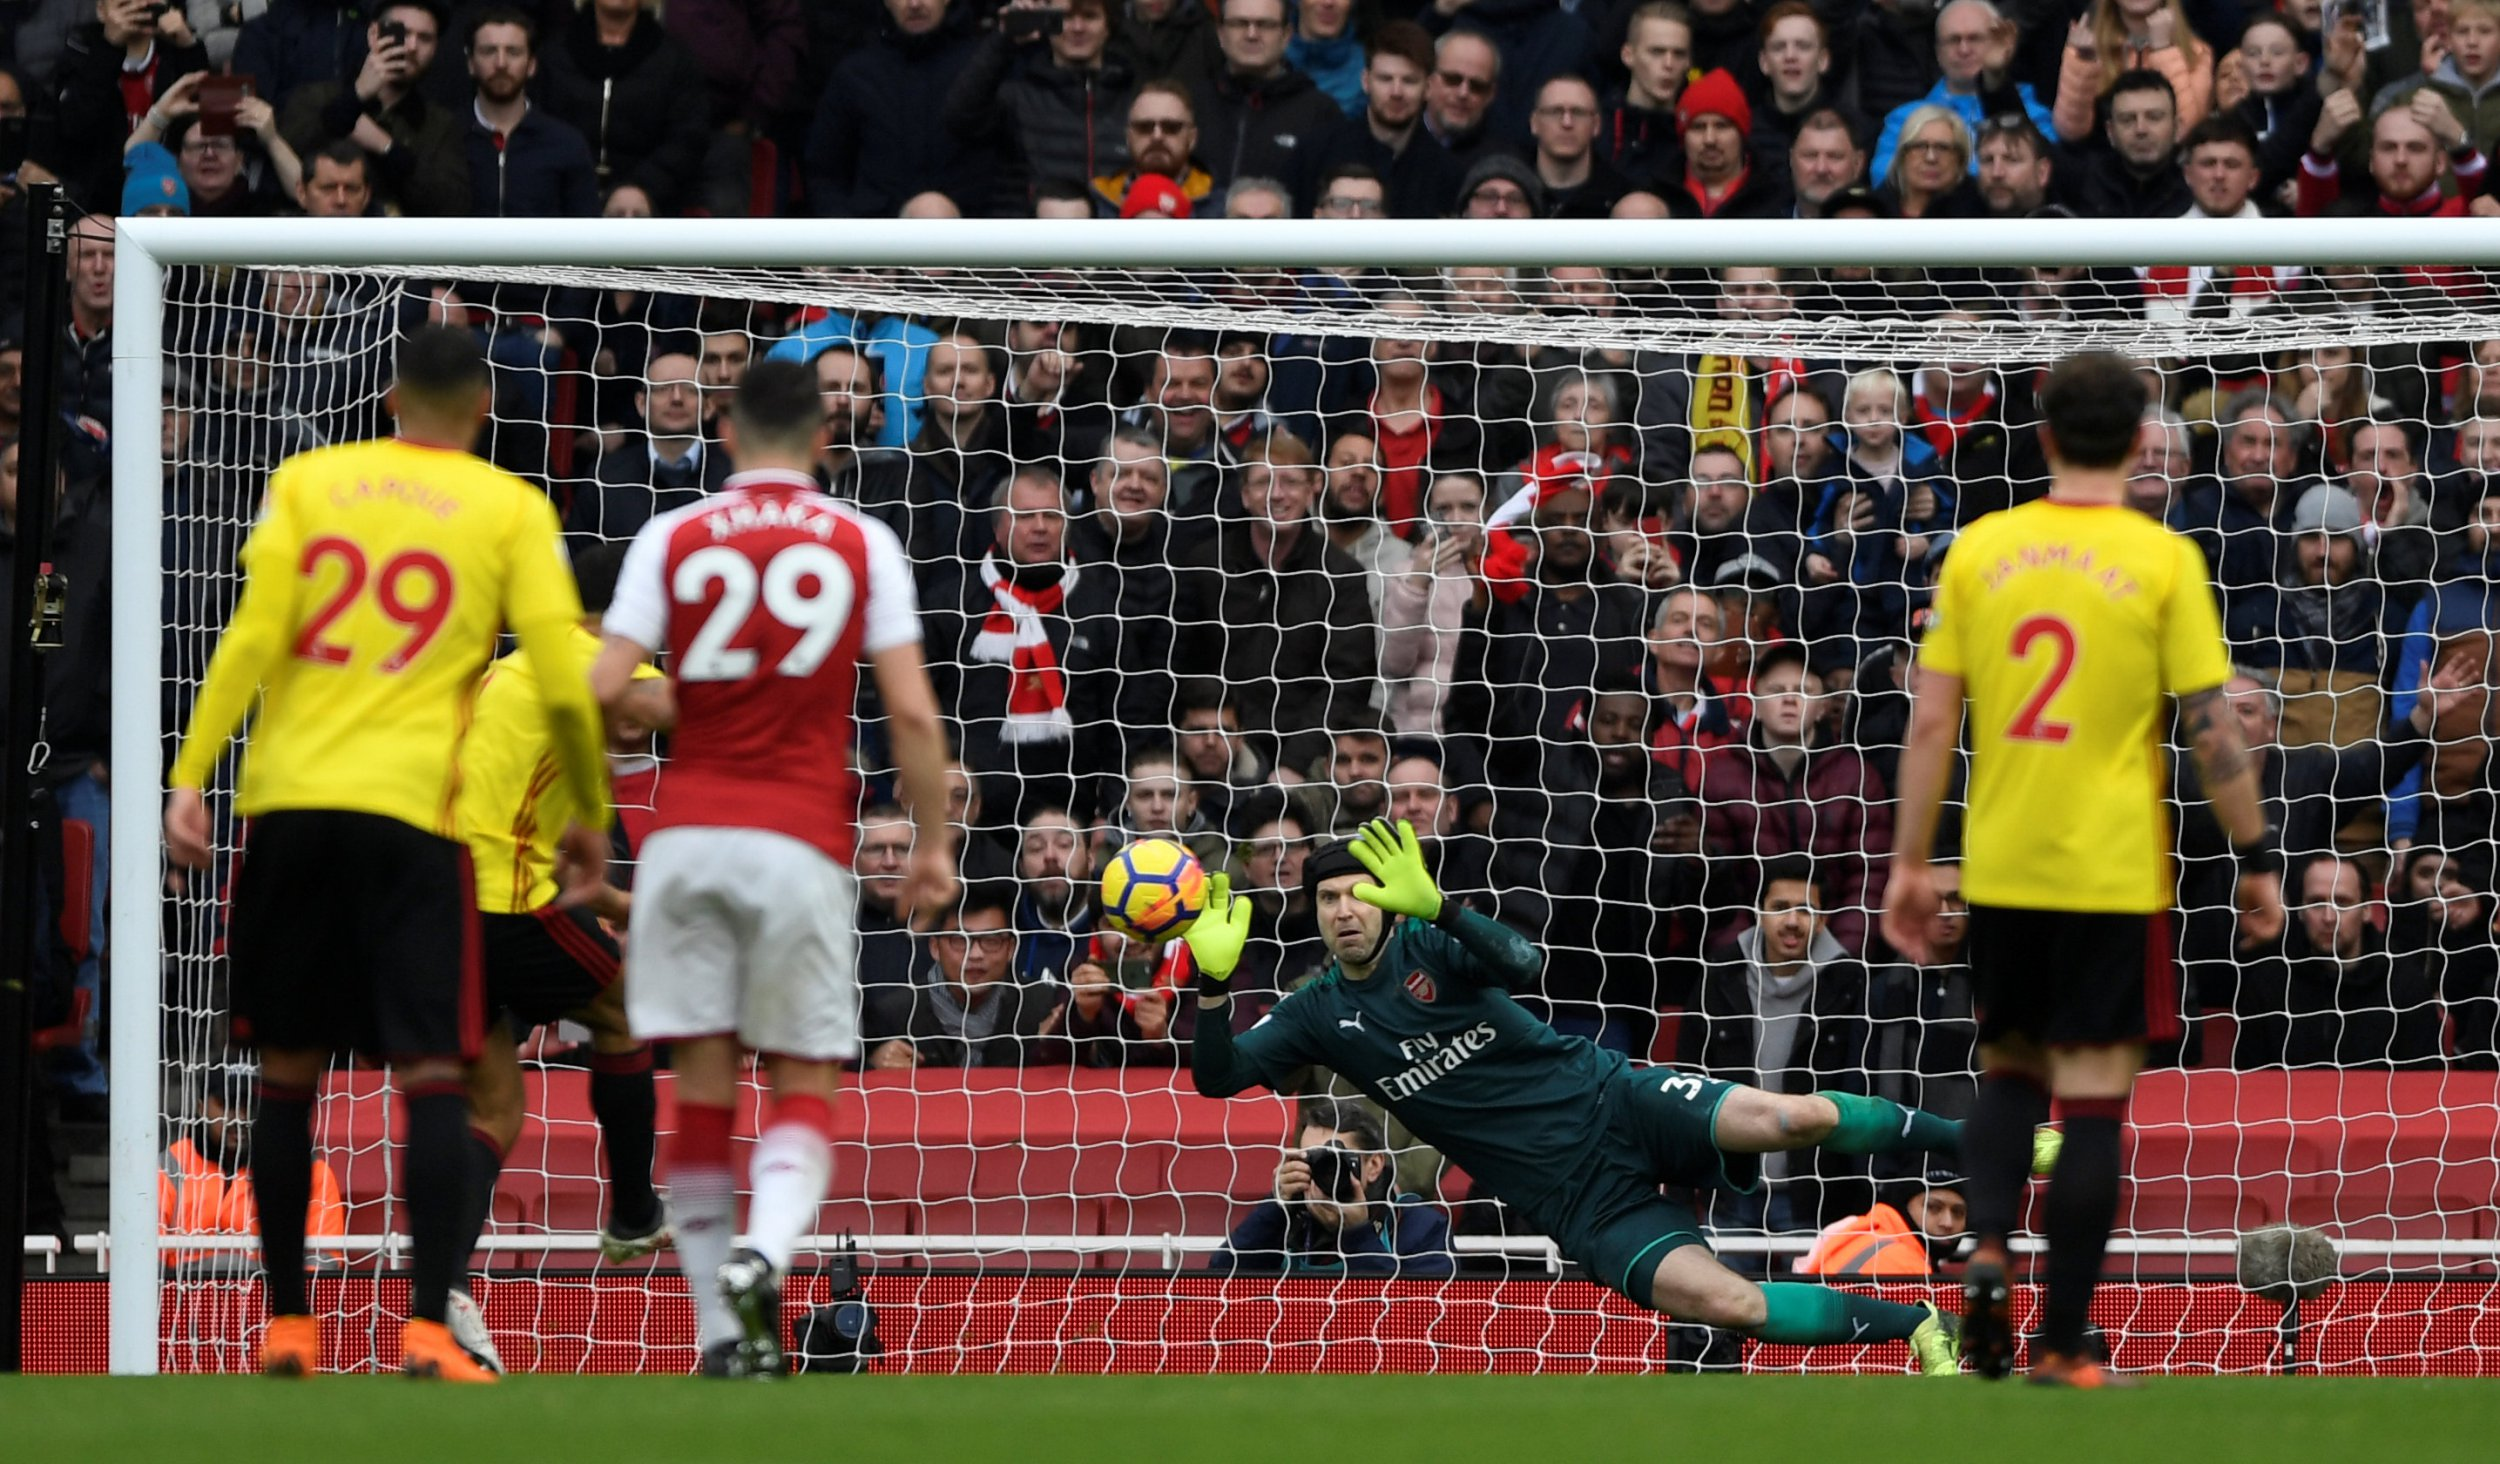 """Soccer Football - Premier League - Arsenal vs Watford - Emirates Stadium, London, Britain - March 11, 2018 Watford's Troy Deeney has a penalty saved by Arsenal's Petr Cech Action Images via Reuters/Tony O'Brien EDITORIAL USE ONLY. No use with unauthorized audio, video, data, fixture lists, club/league logos or """"live"""" services. Online in-match use limited to 75 images, no video emulation. No use in betting, games or single club/league/player publications. Please contact your account representative for further details."""